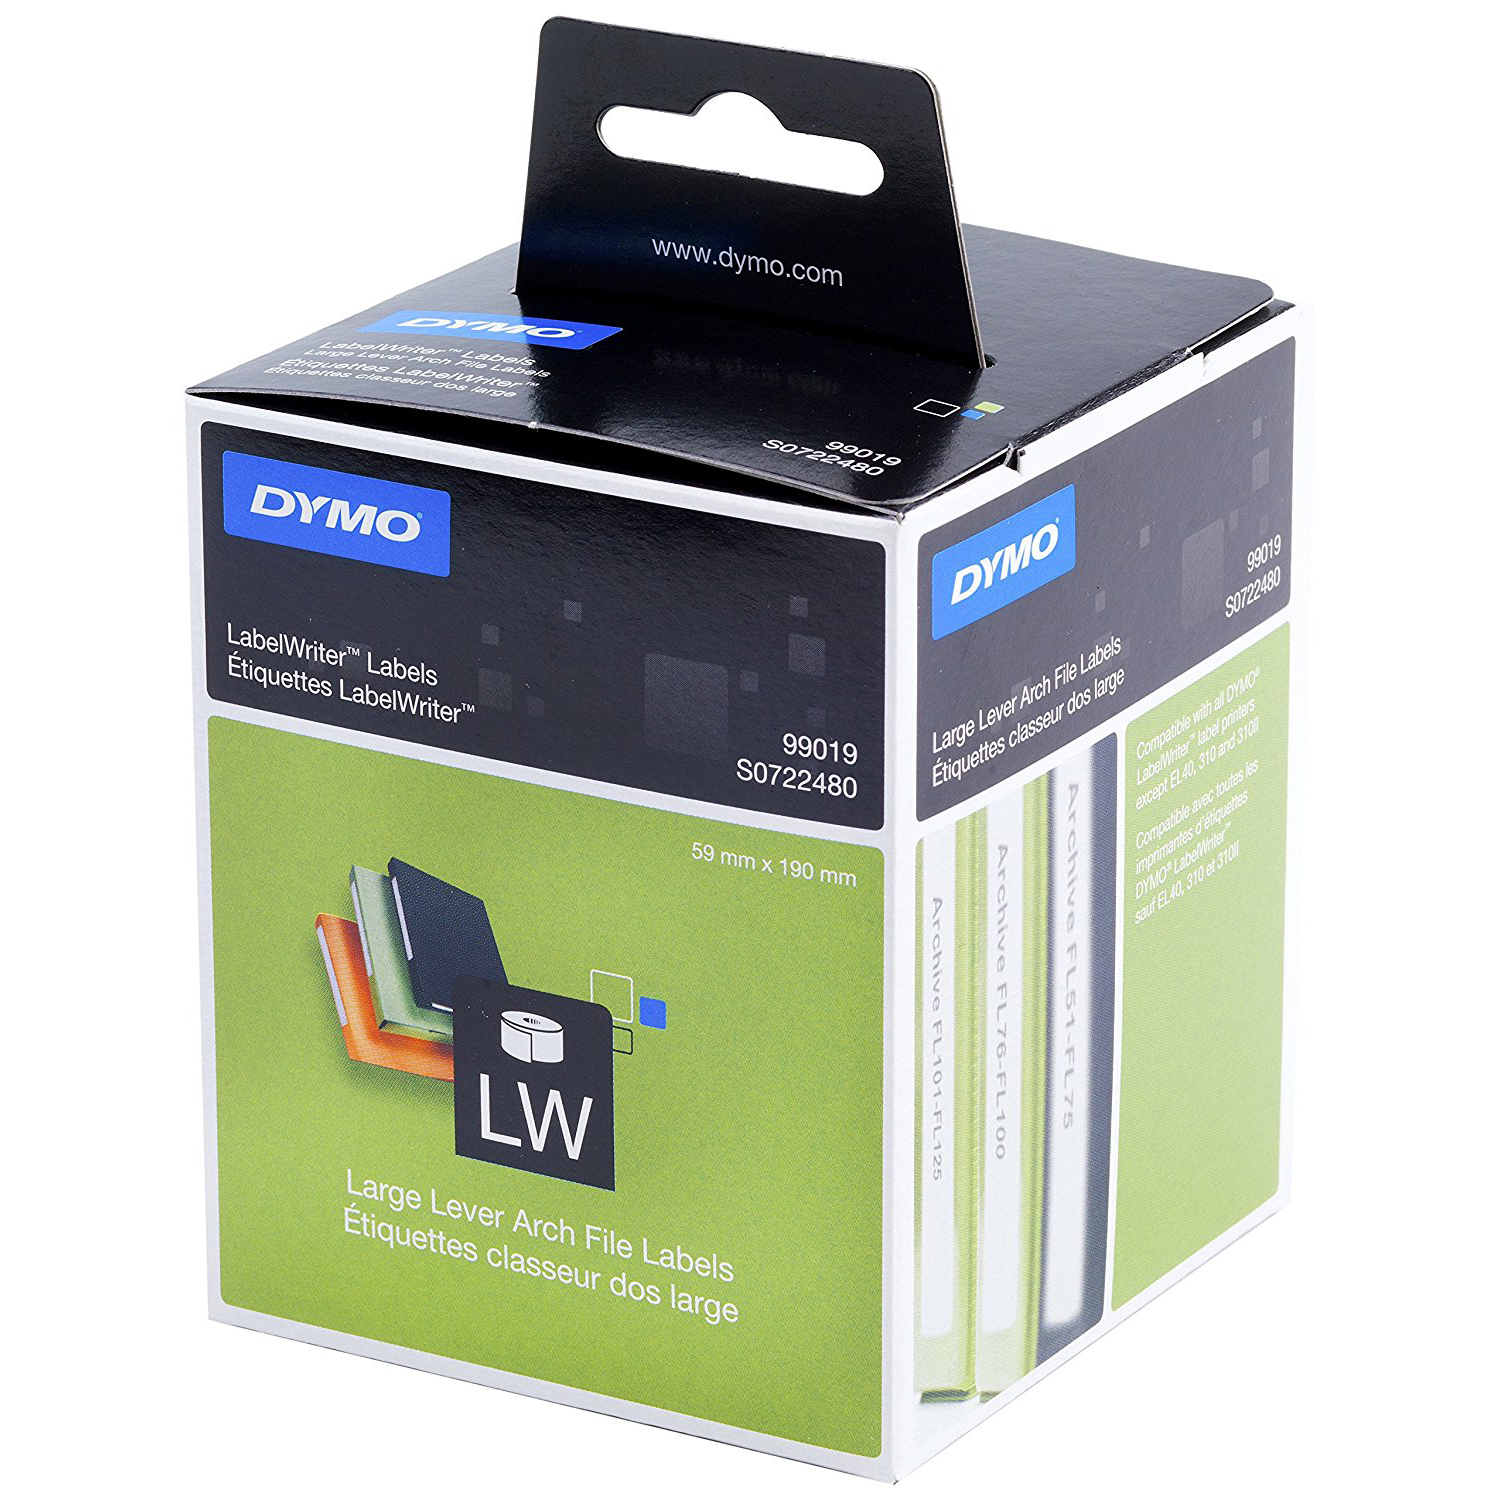 Dymo S0722480 LW Broad Folder Labels Black on White 190mm x 59mm - 110 Labels/Roll